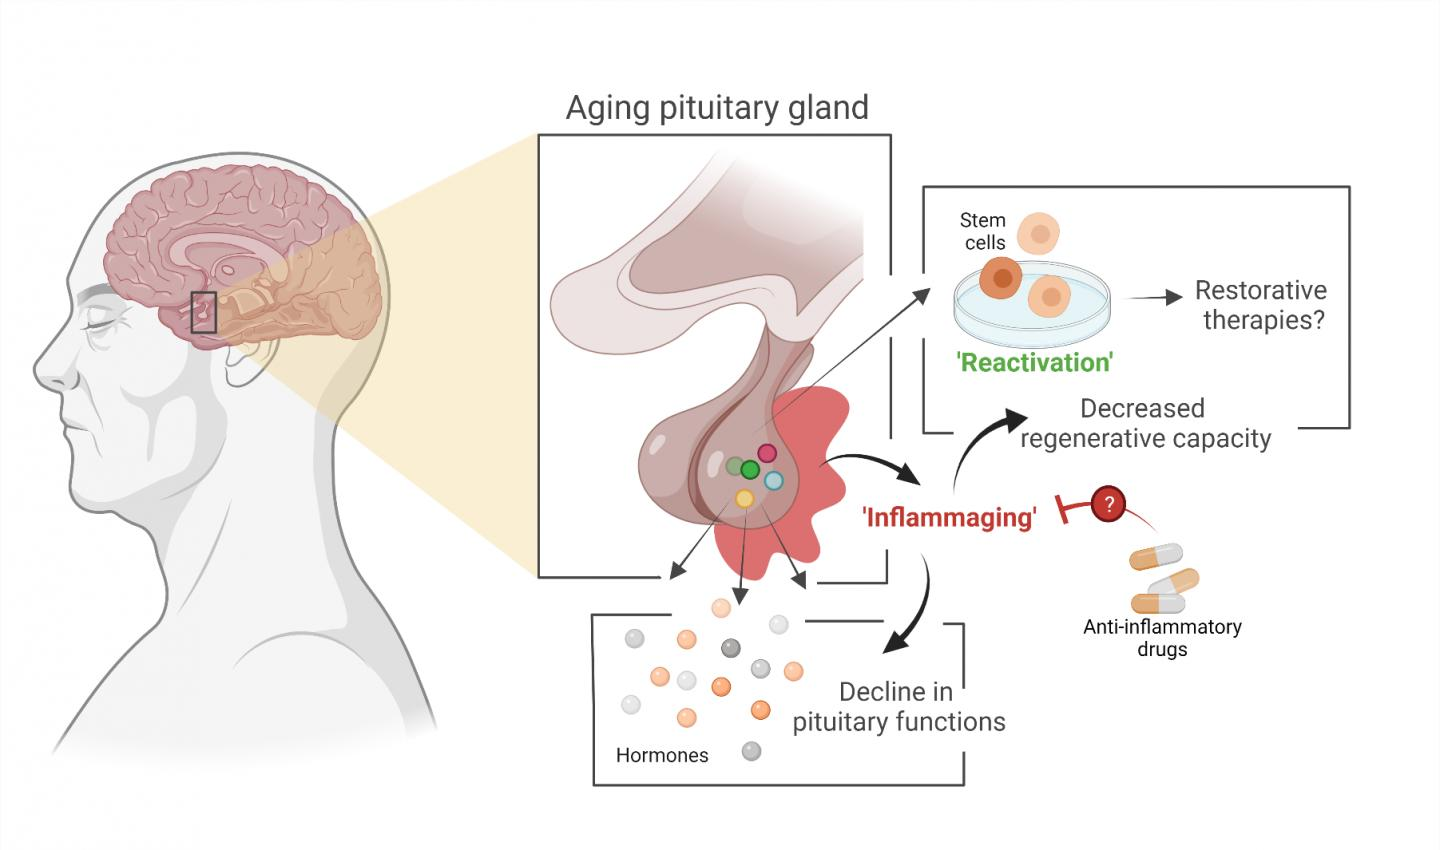 Aging of the Pituitary Gland